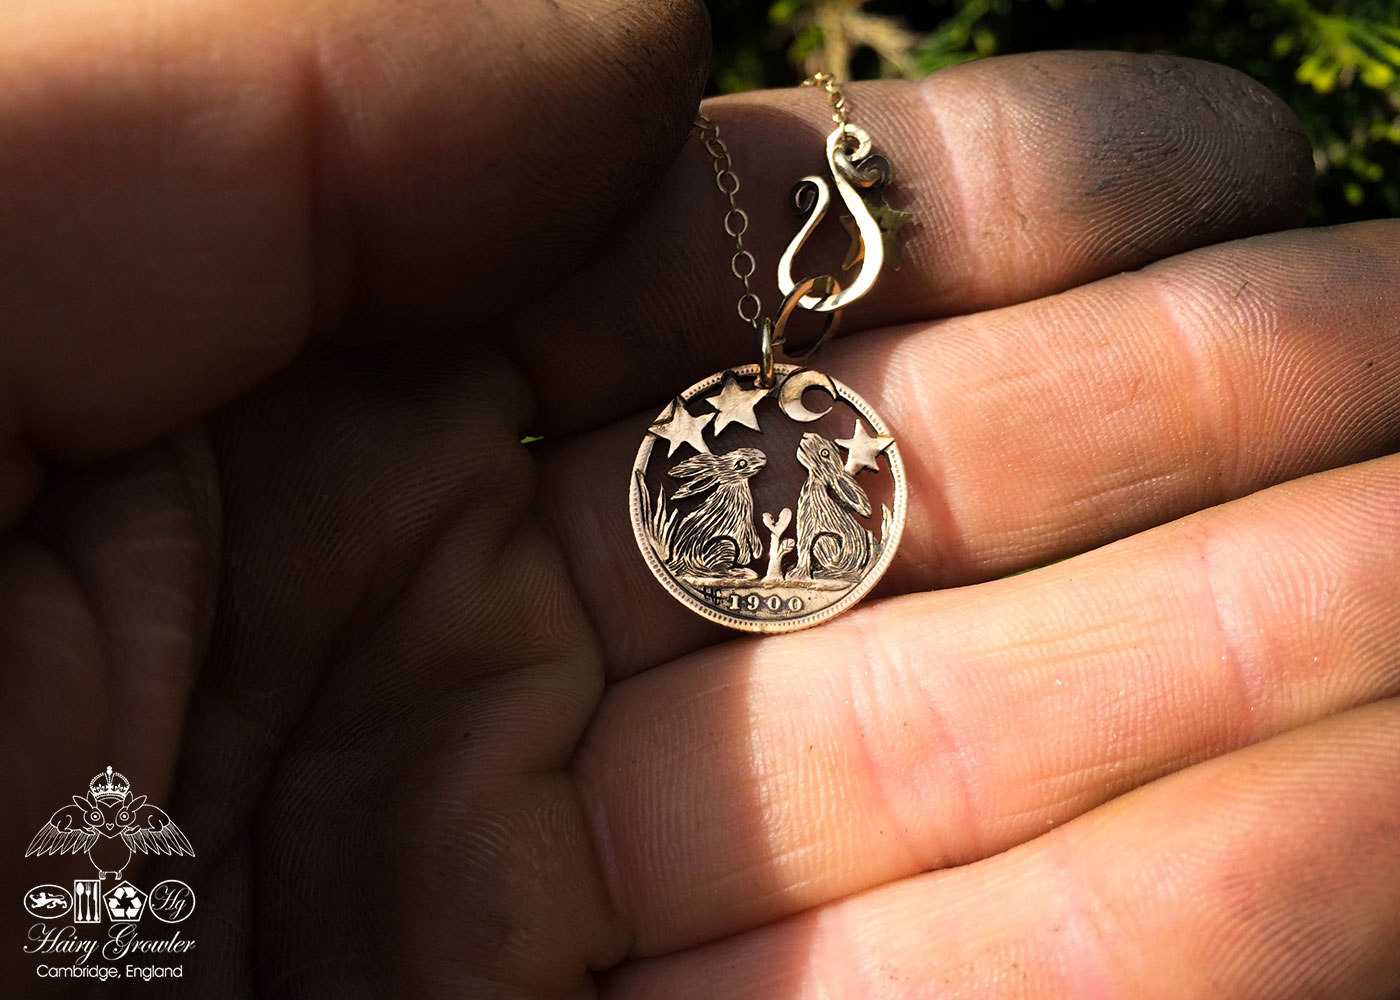 Handmade and completely upcycled and repurposed moon gazing hares necklace totally handcrafted and recycled from old 22ct solid gold sovereign coins. Designed and created by Hairy Growler Jewellery, Cambridge, UK.